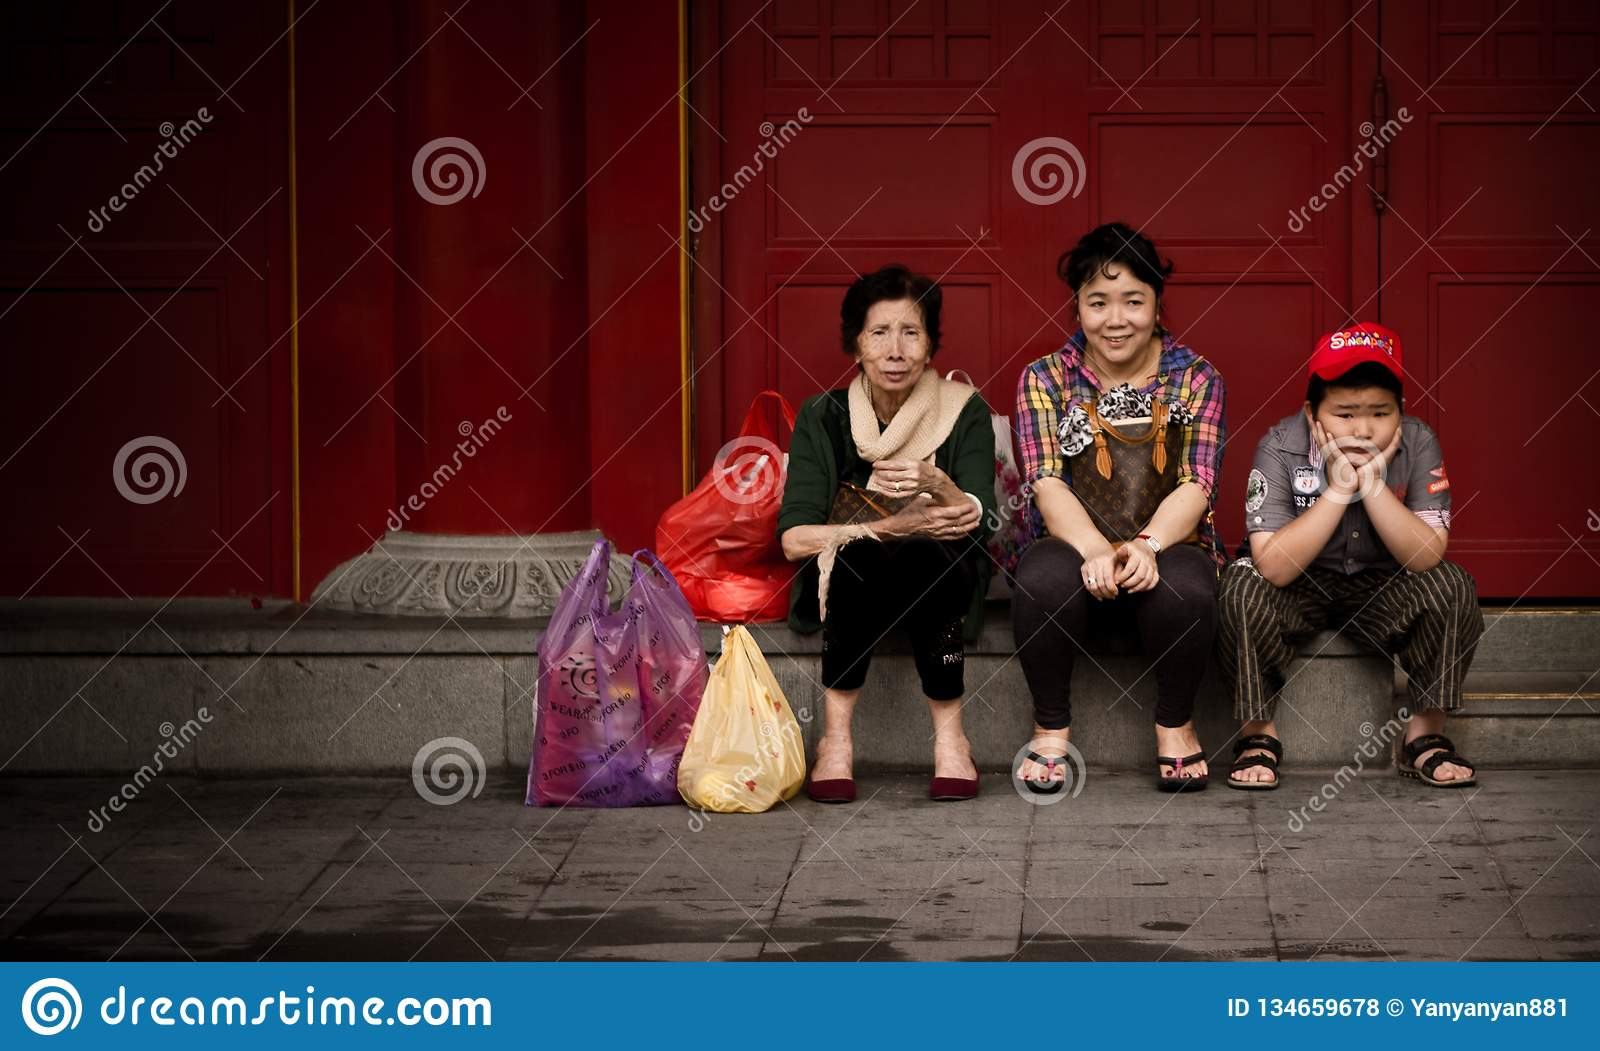 Chinese tourists sitting and waiting in Singapore street